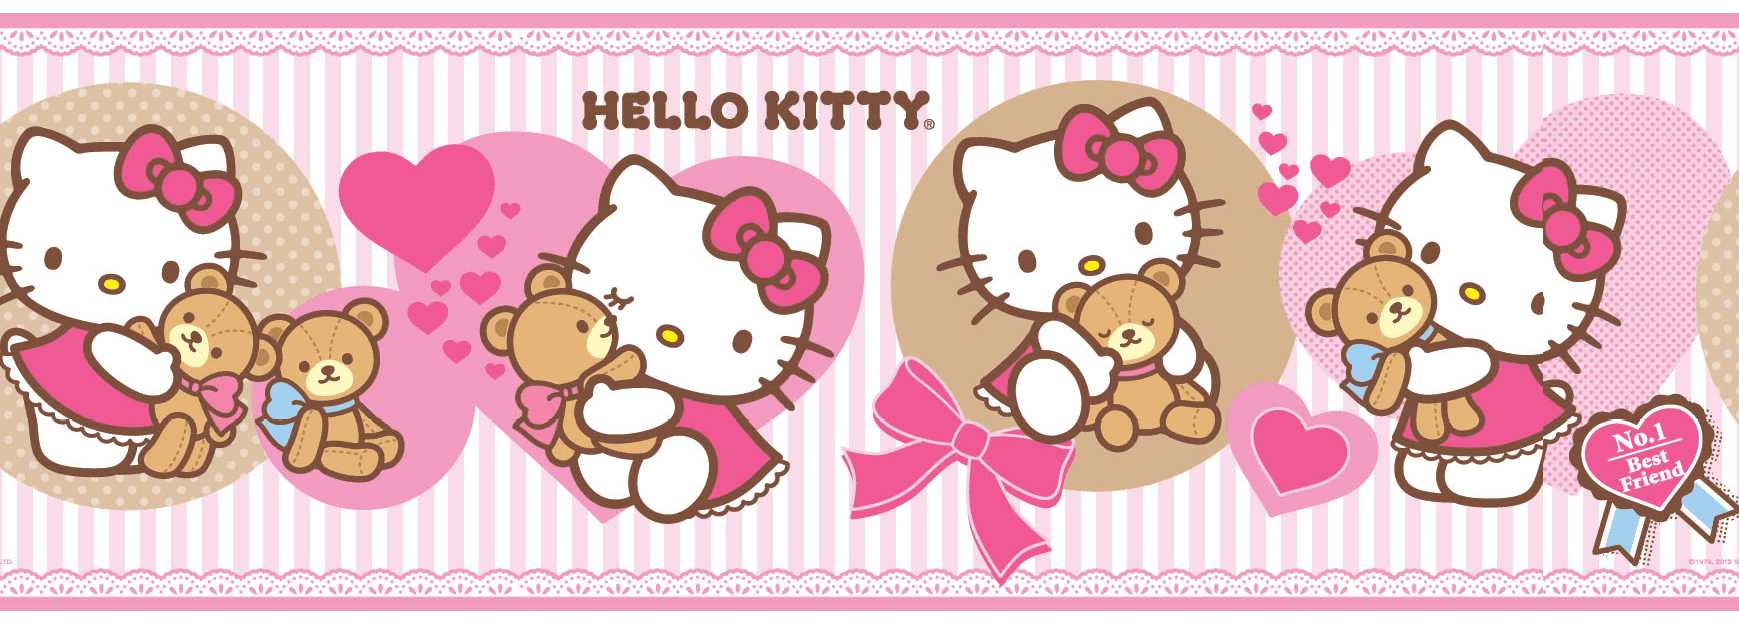 Guarda autoadhesica Hello Kitty 8509-1